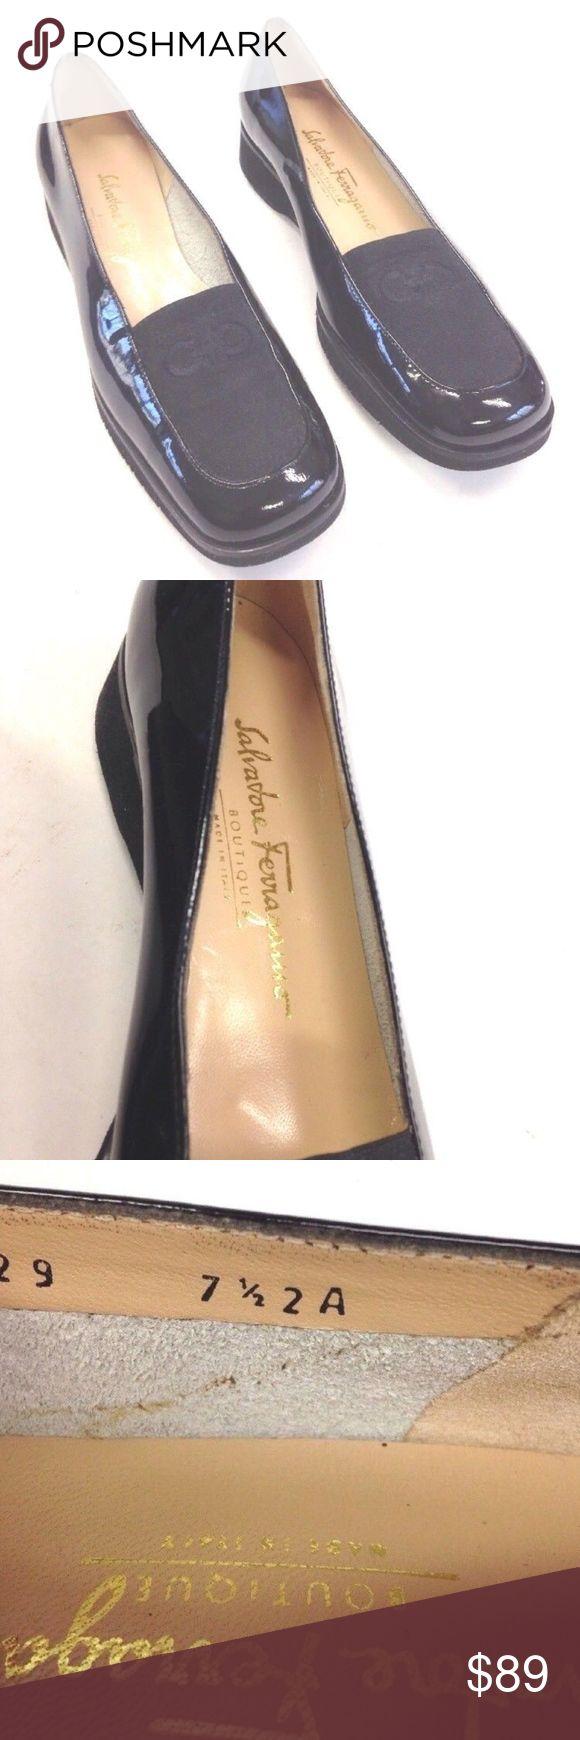 SALVATORE FERRAGAMO BLACK PATENT WEDGE LOAFERS NICE PAIR OF SALVATORE FERRAGAMO BLACK PATENT WEDGE LOAFERS  WOMENS SIZE 7.5 AA  1'' WEDGE  LIGHTLY WORN. NICE & CLEAN  SEE PICTURES FOR DETAILS Salvatore Ferragamo Shoes Flats & Loafers